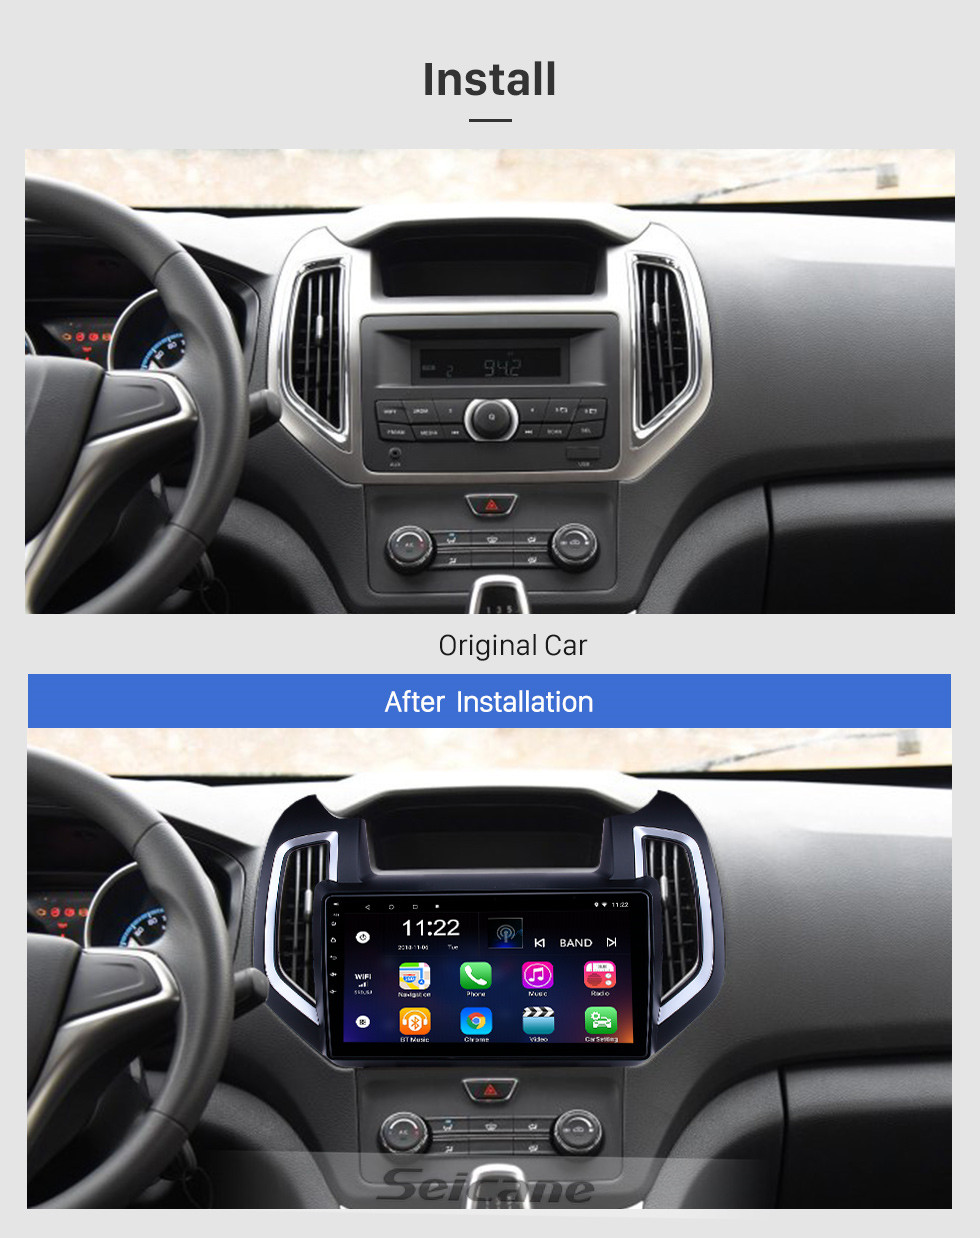 Seicane 10.1 inch Android 10.0 GPS Navigation Radio for 2017-2019 Changan Ruixing with HD Touchscreen Bluetooth USB AUX support Carplay SWC TPMS